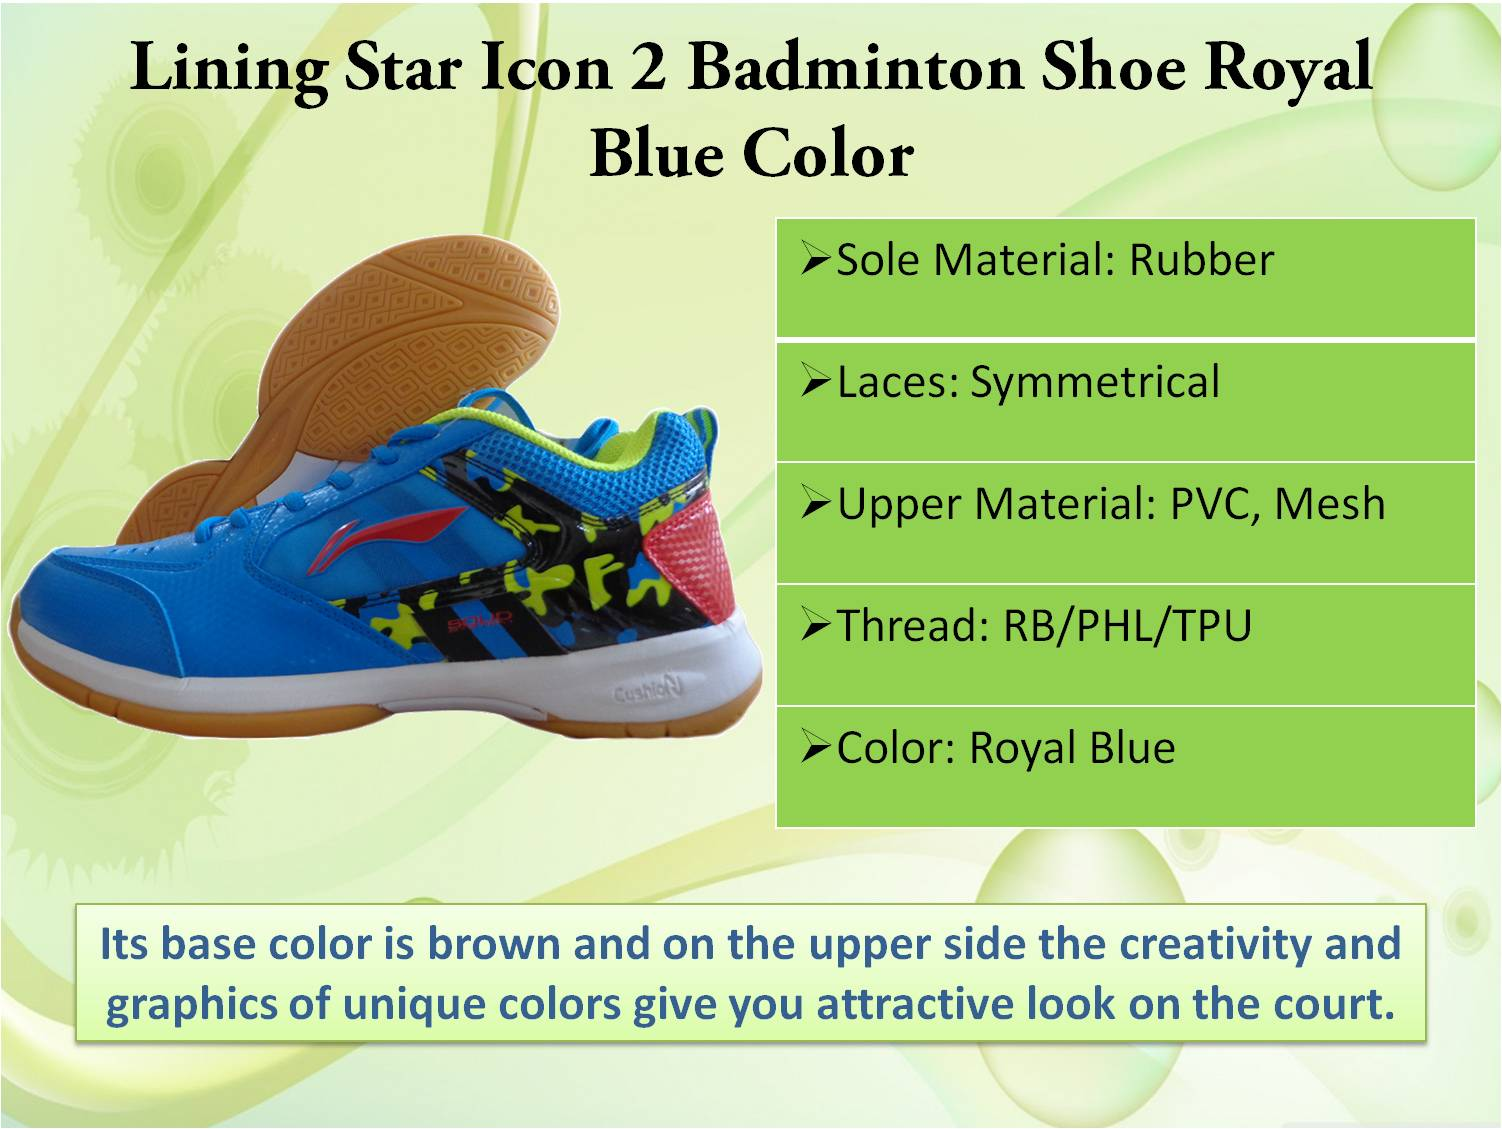 Lining star icon 2 badminton shoe in Royal Blue color